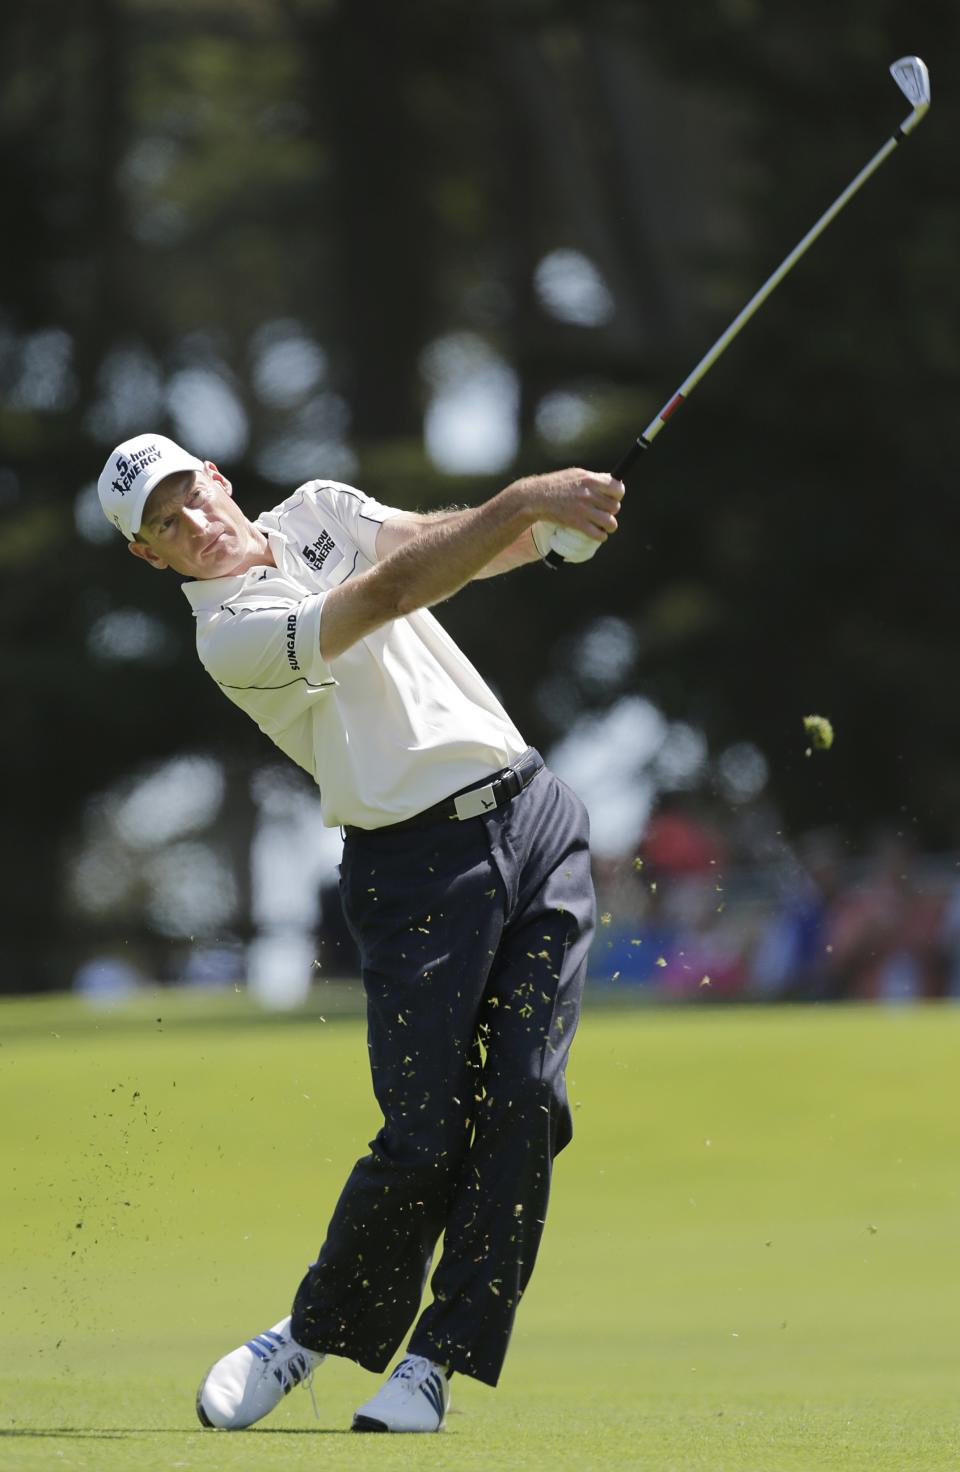 Jim Furyk hits a shot on the first hole during the third round of the U.S. Open Championship golf tournament Saturday, June 16, 2012, at The Olympic Club in San Francisco. (AP Photo/Eric Gay)